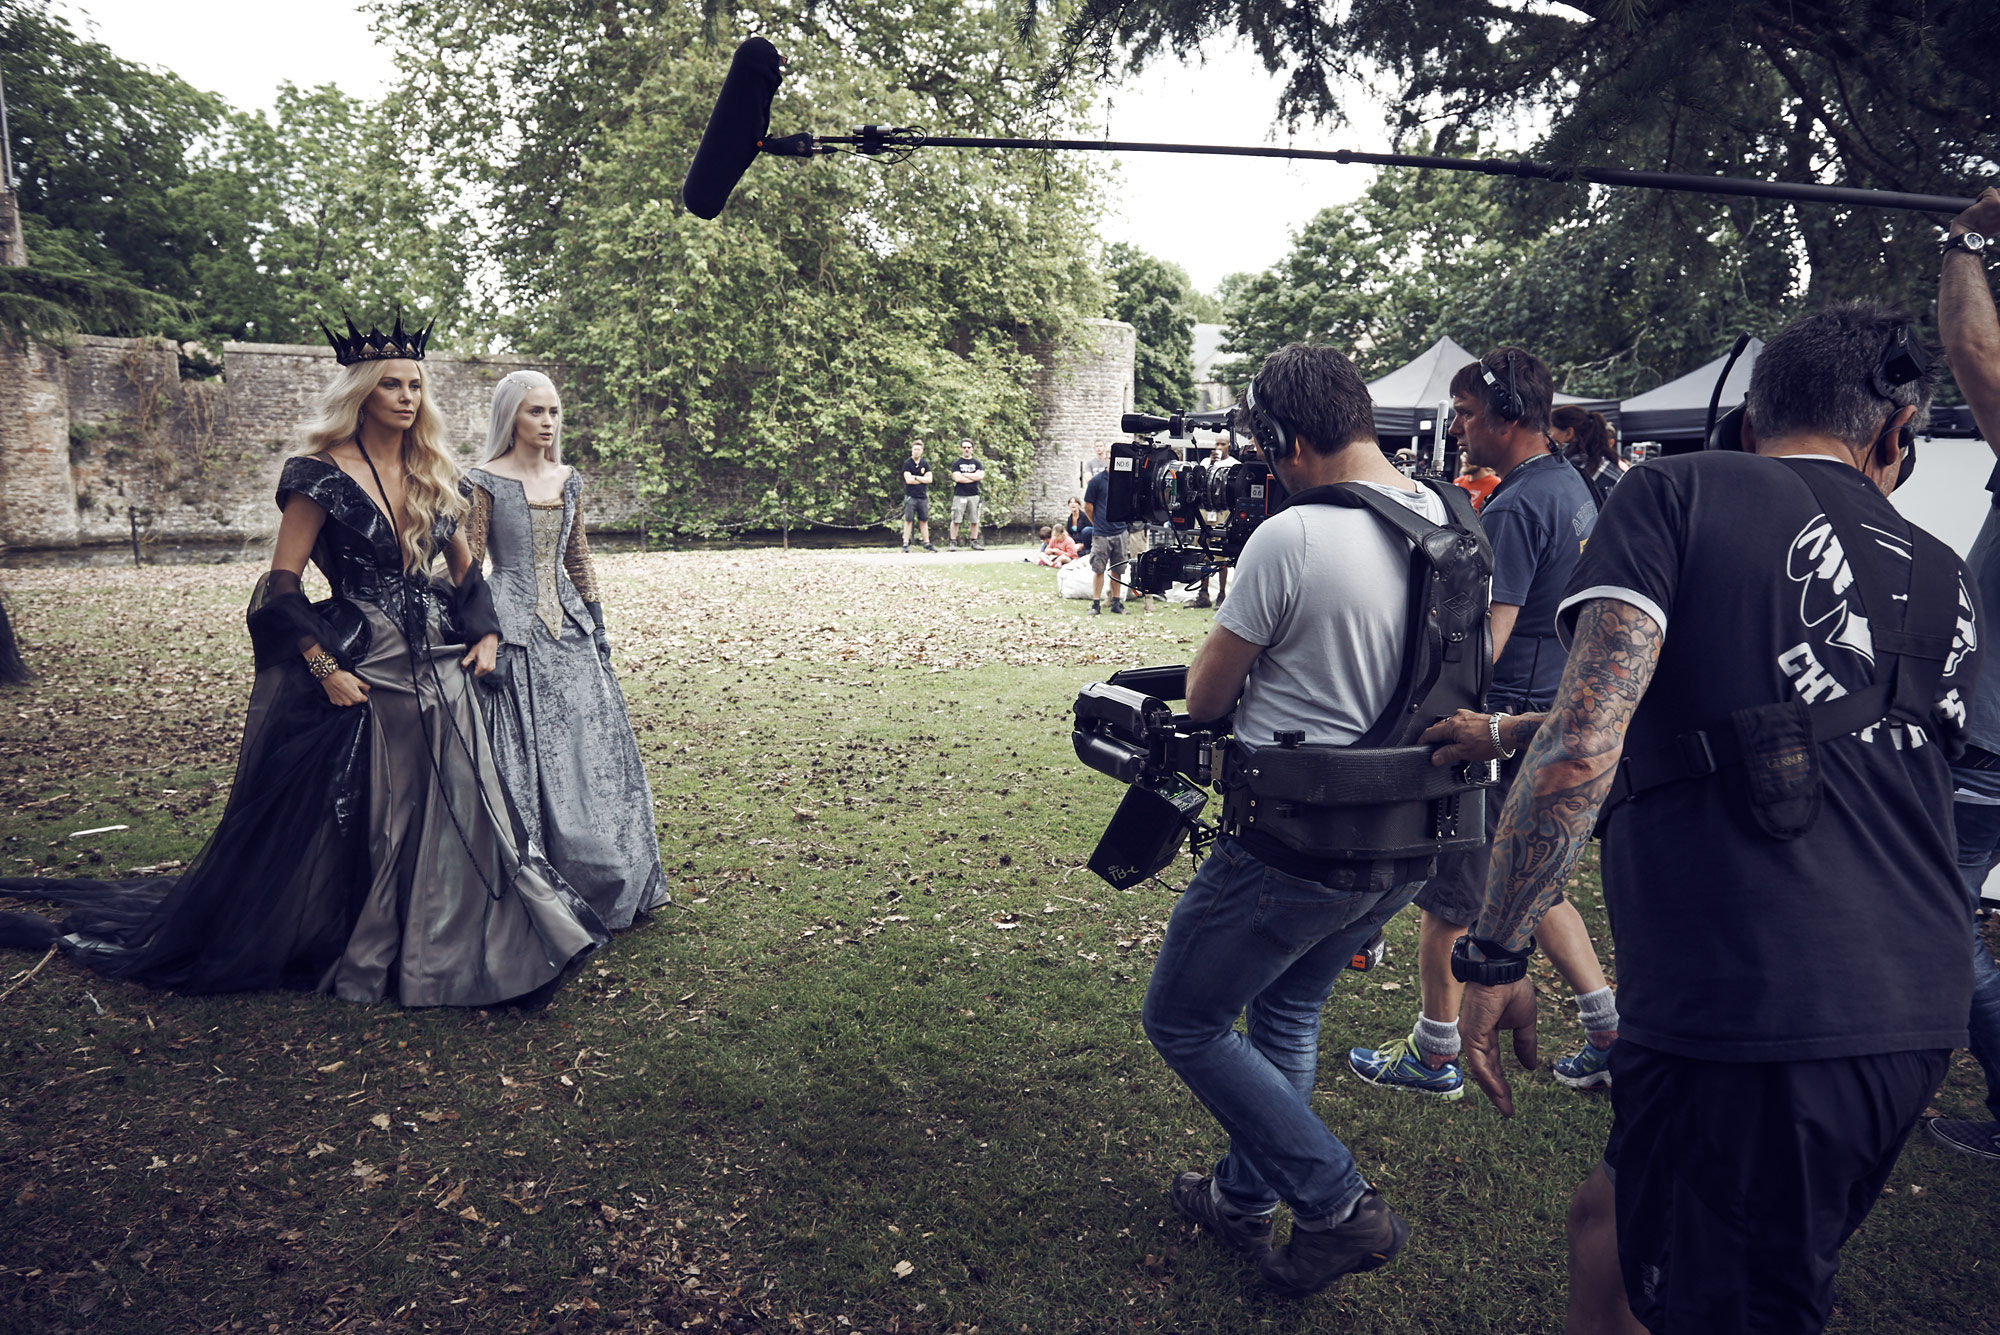 Charlize Theron and Emily Blunt on set of The Huntsman